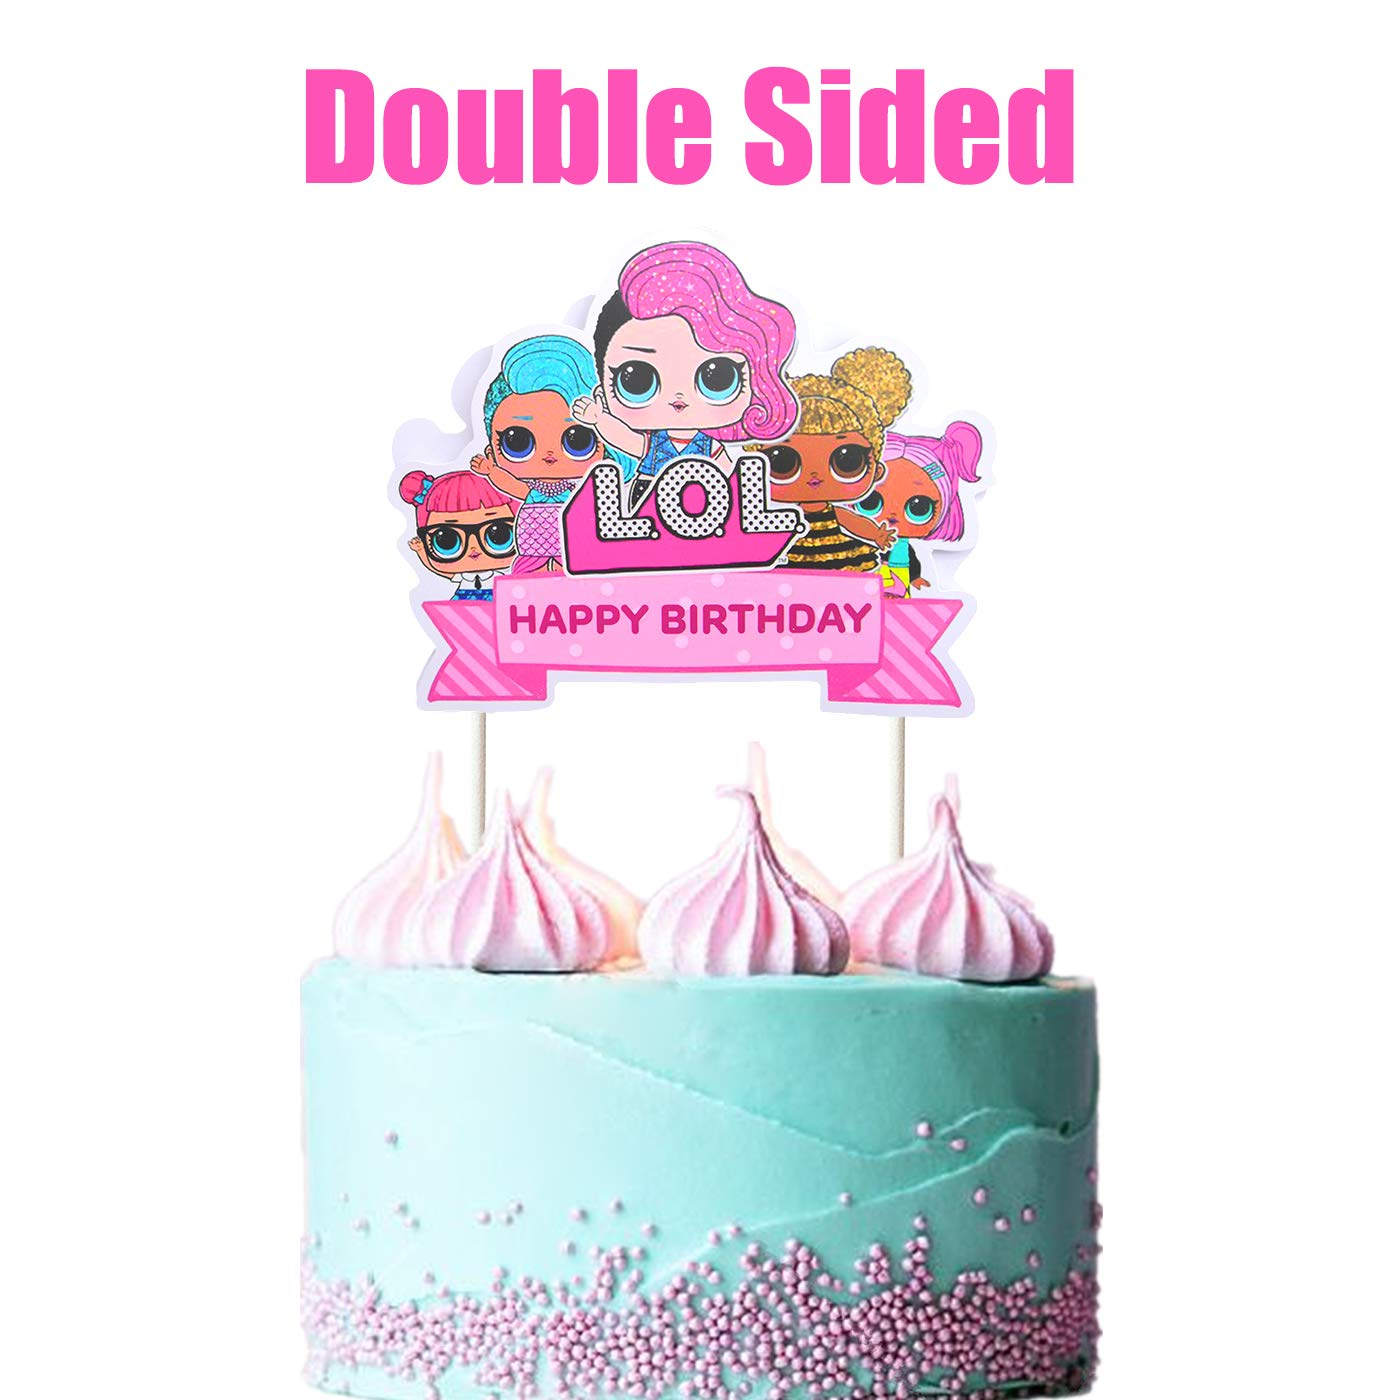 LOL Cake Topper Happy Birthday Pink Decorations For Bday Theme Party Amazon Grocery Gourmet Food